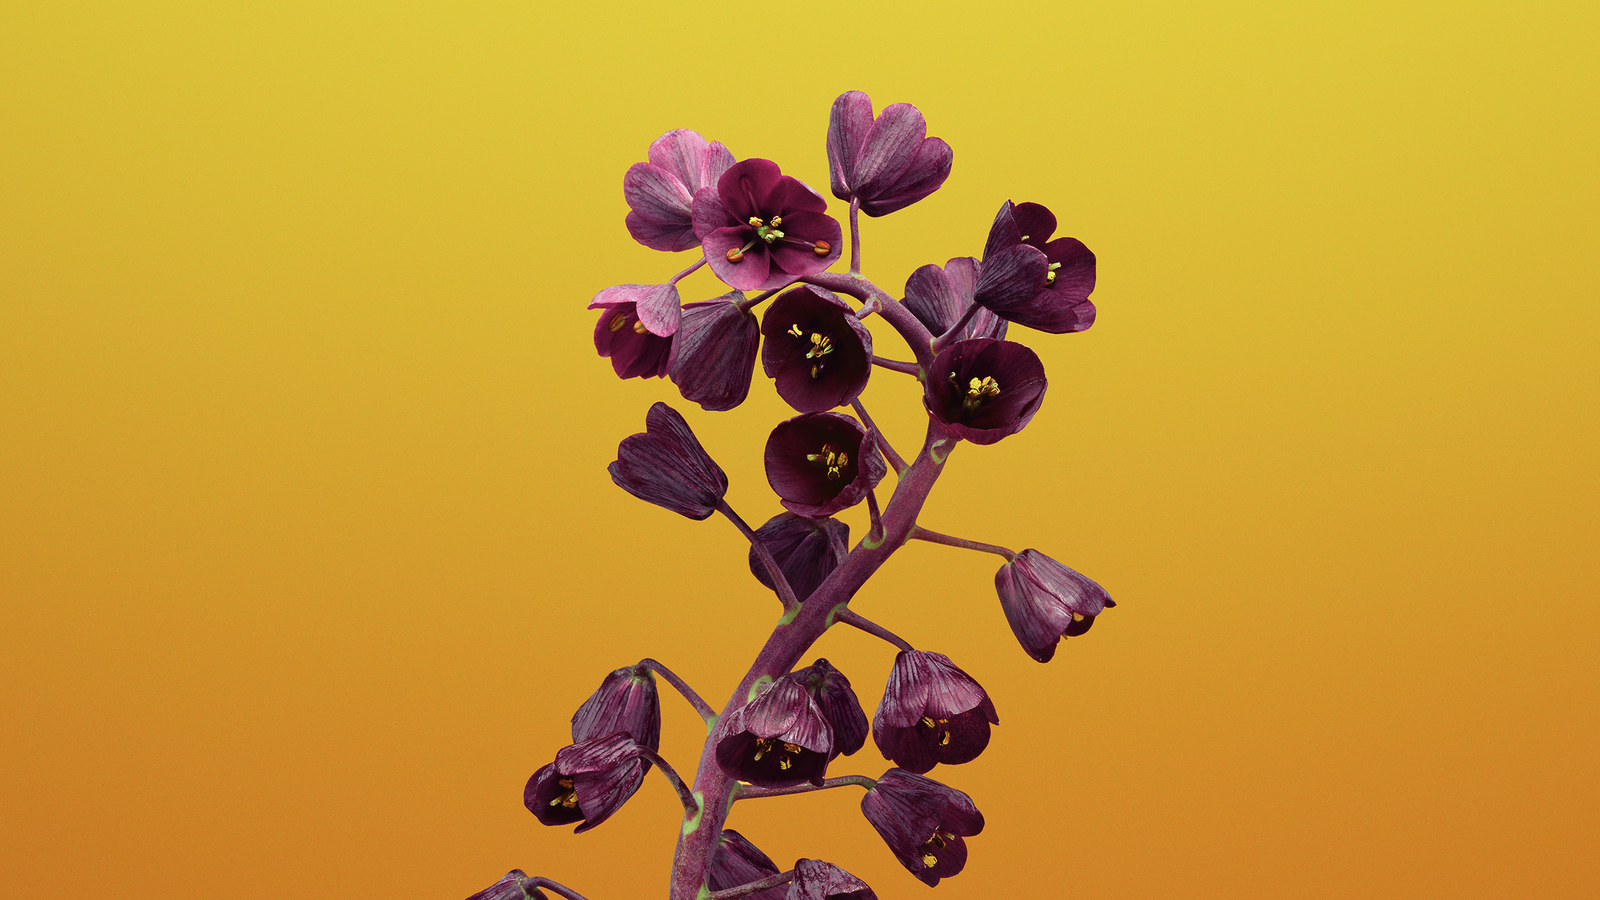 ios-11-flower-fritillaria-bb.jpg